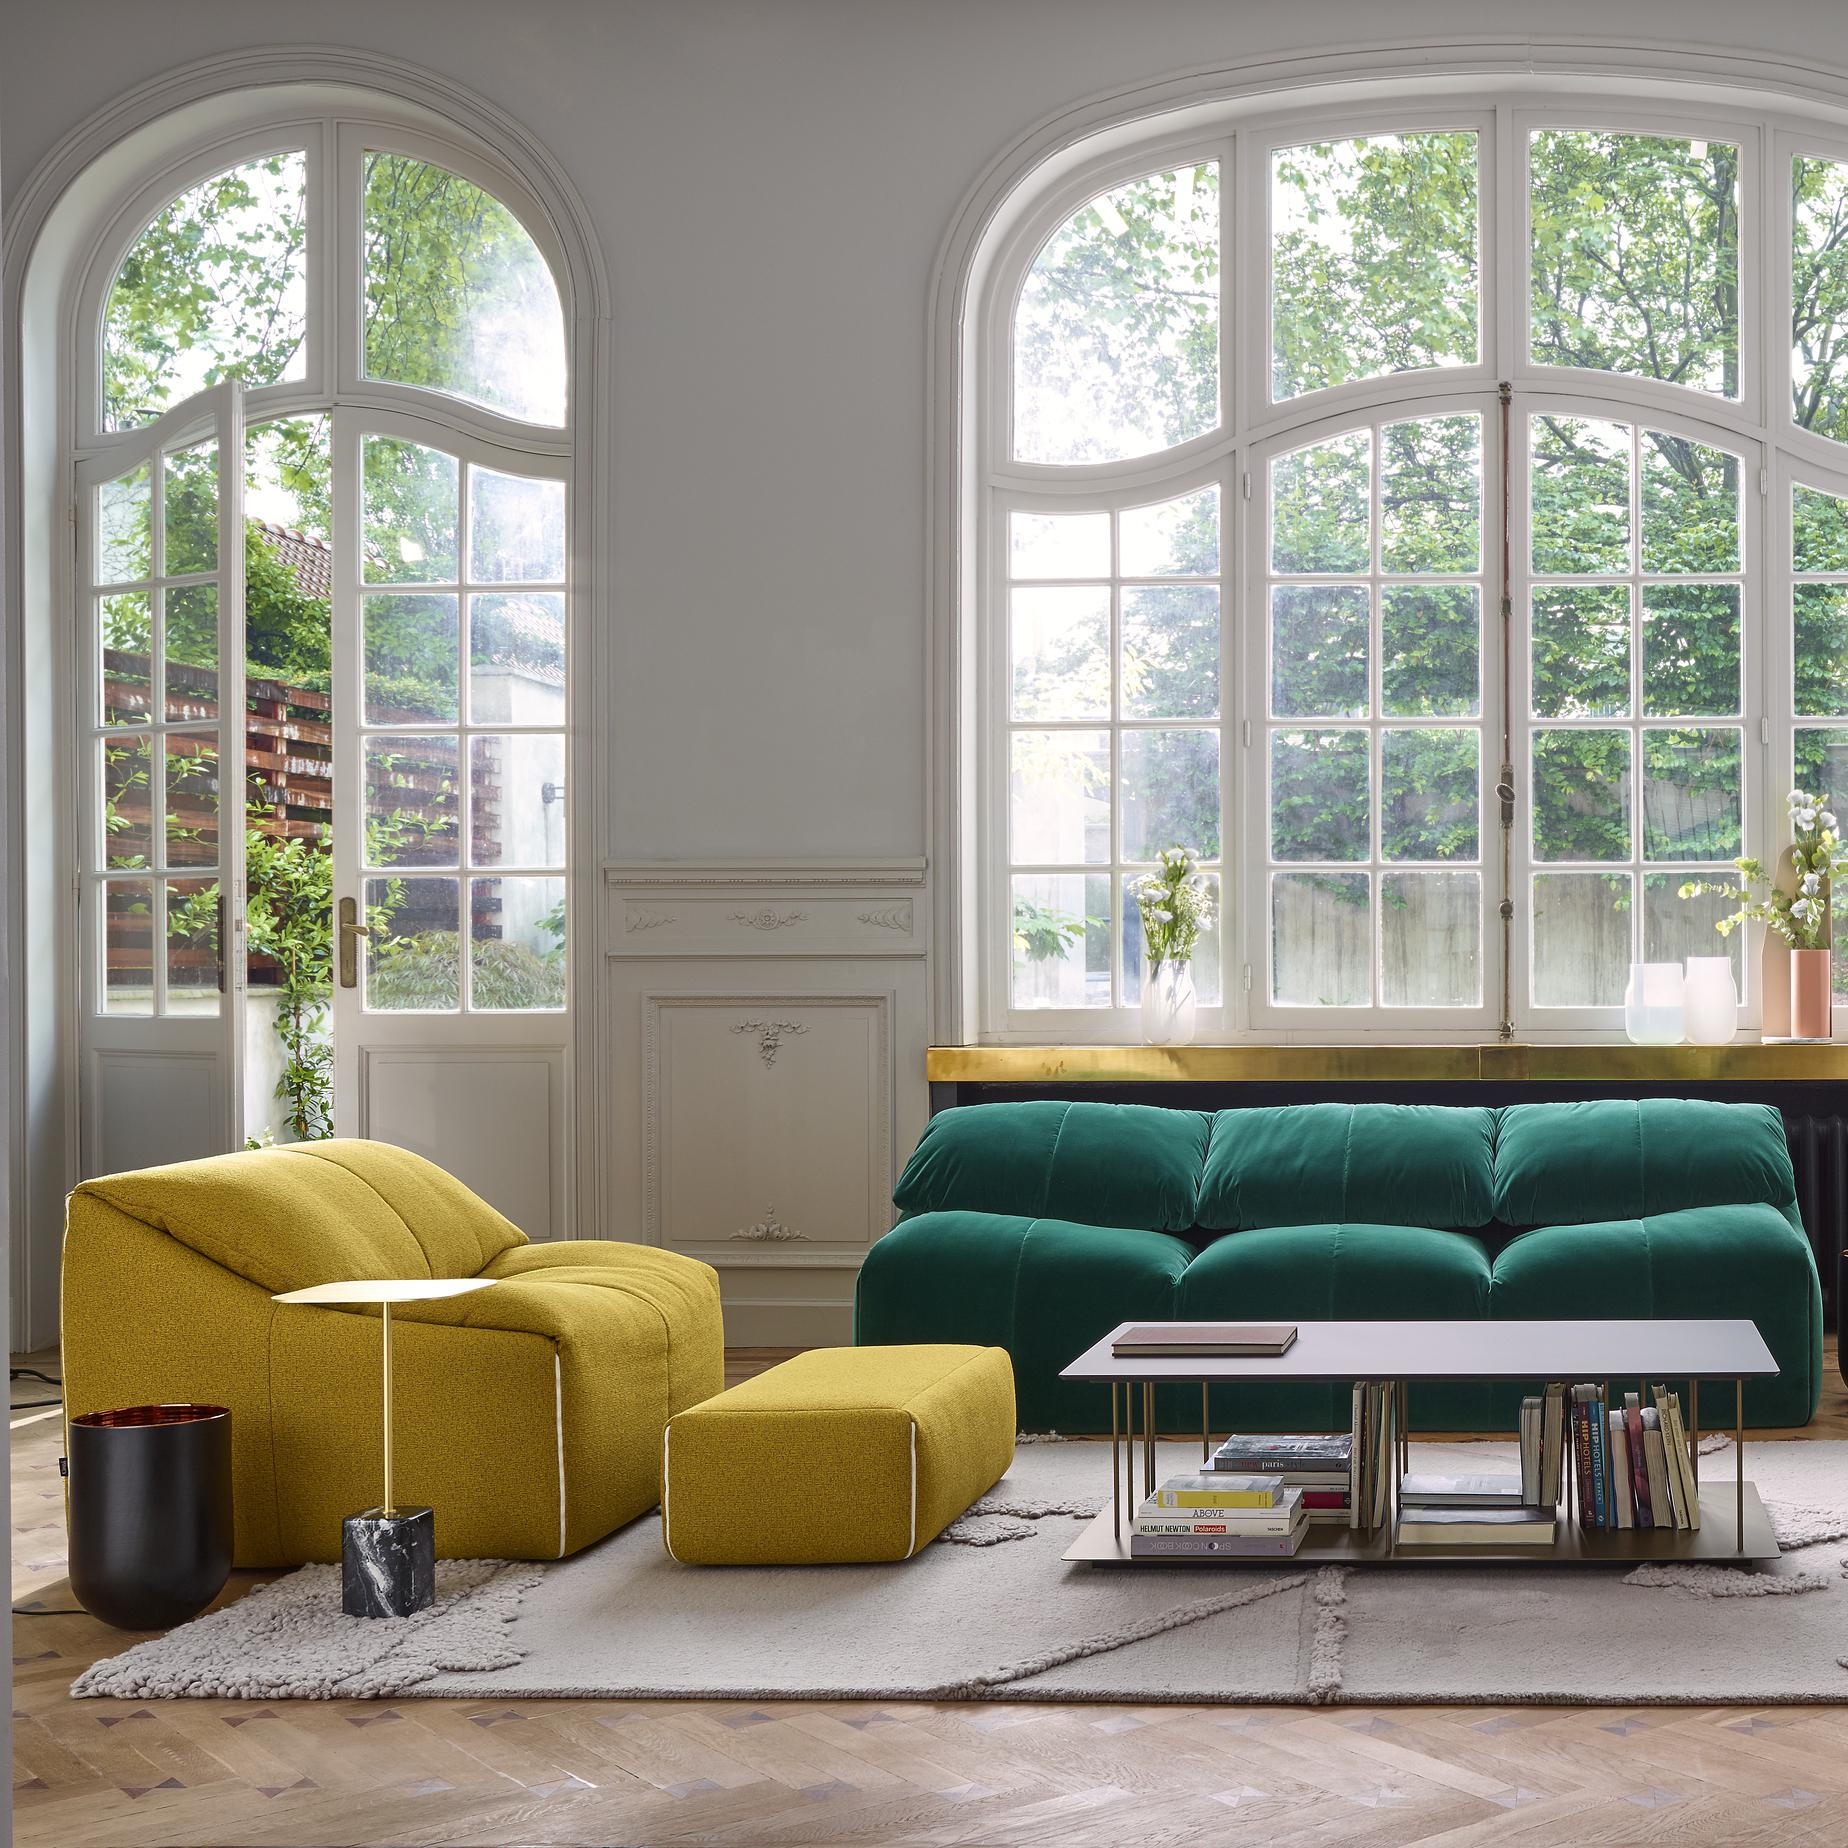 Plumy armchairs designer annie hi ronimus ligne roset for Living room ideas uk 2018